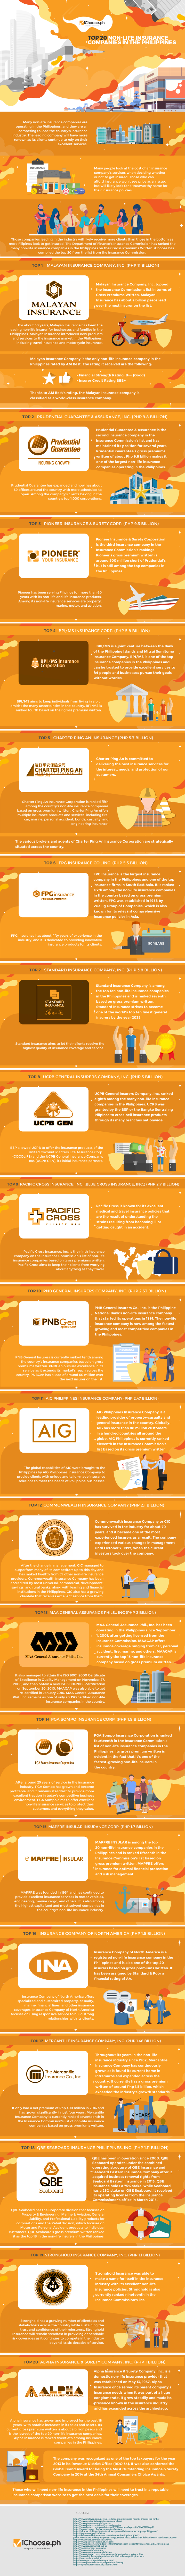 iChoose infog Top 20 Non-Life Insurance Companies in the Philippines